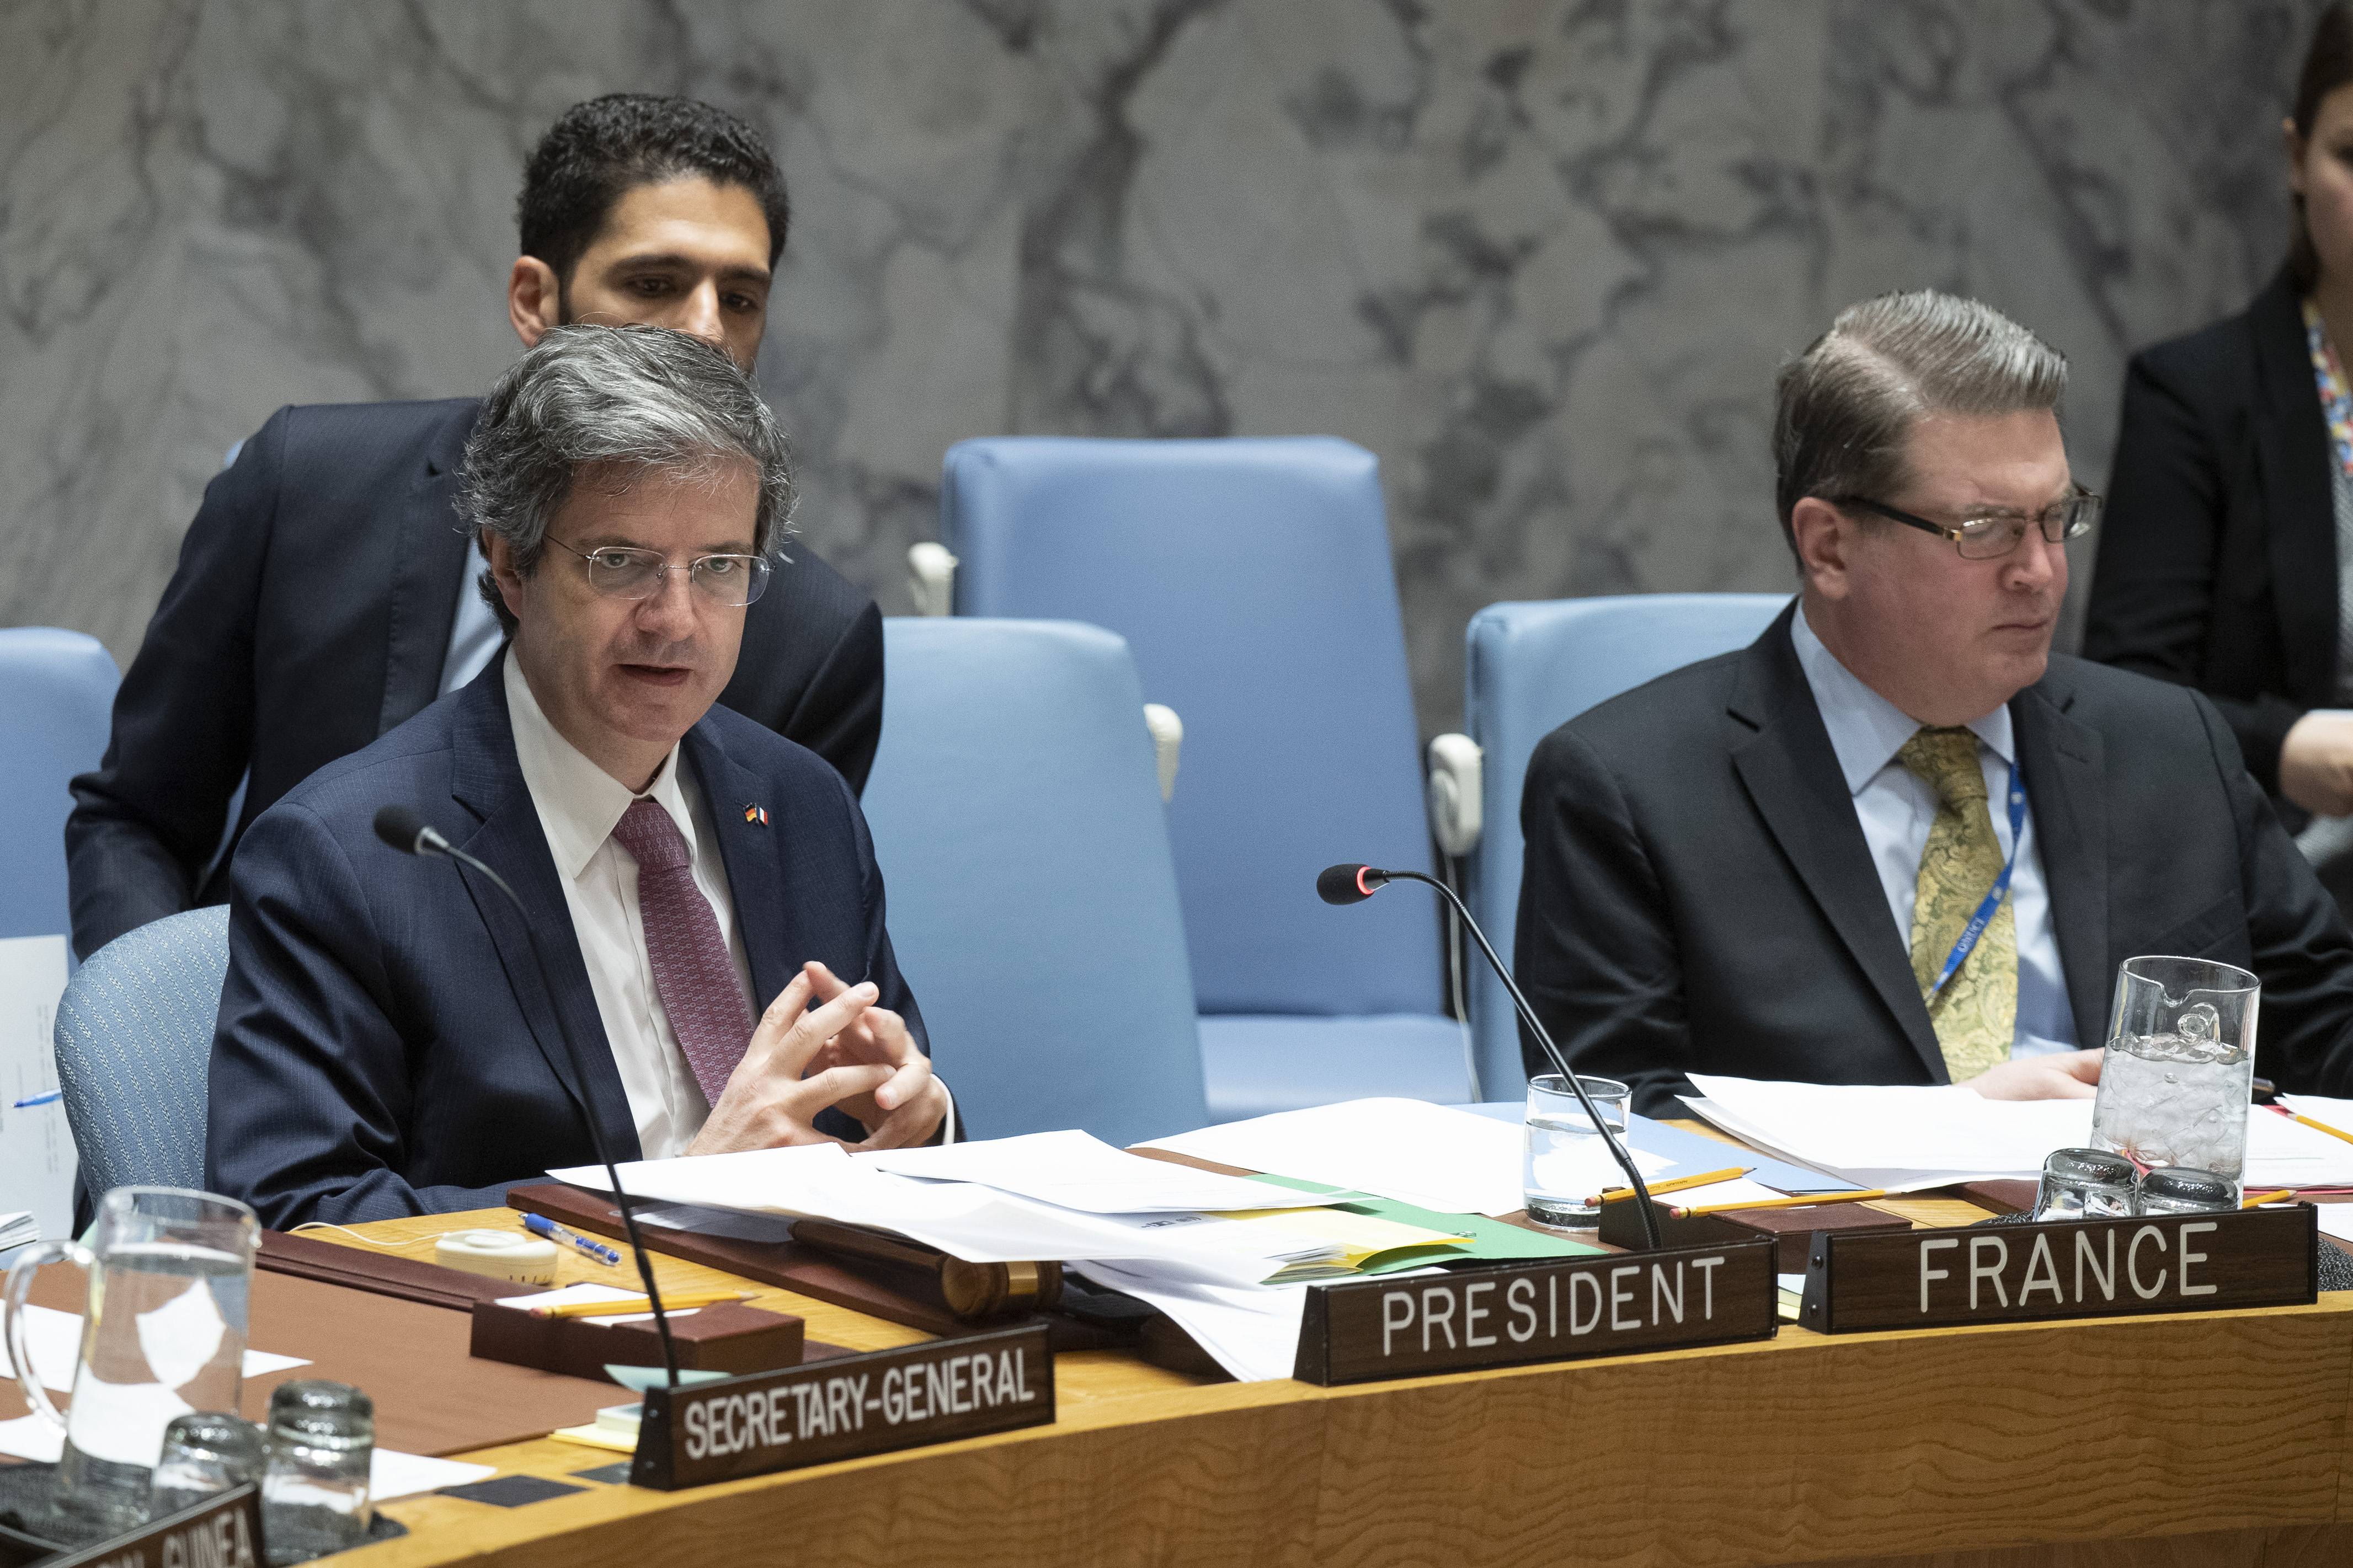 François Delattre (left) chairs the Security Council meeting on the Organization for Security and Cooperation in Europe.